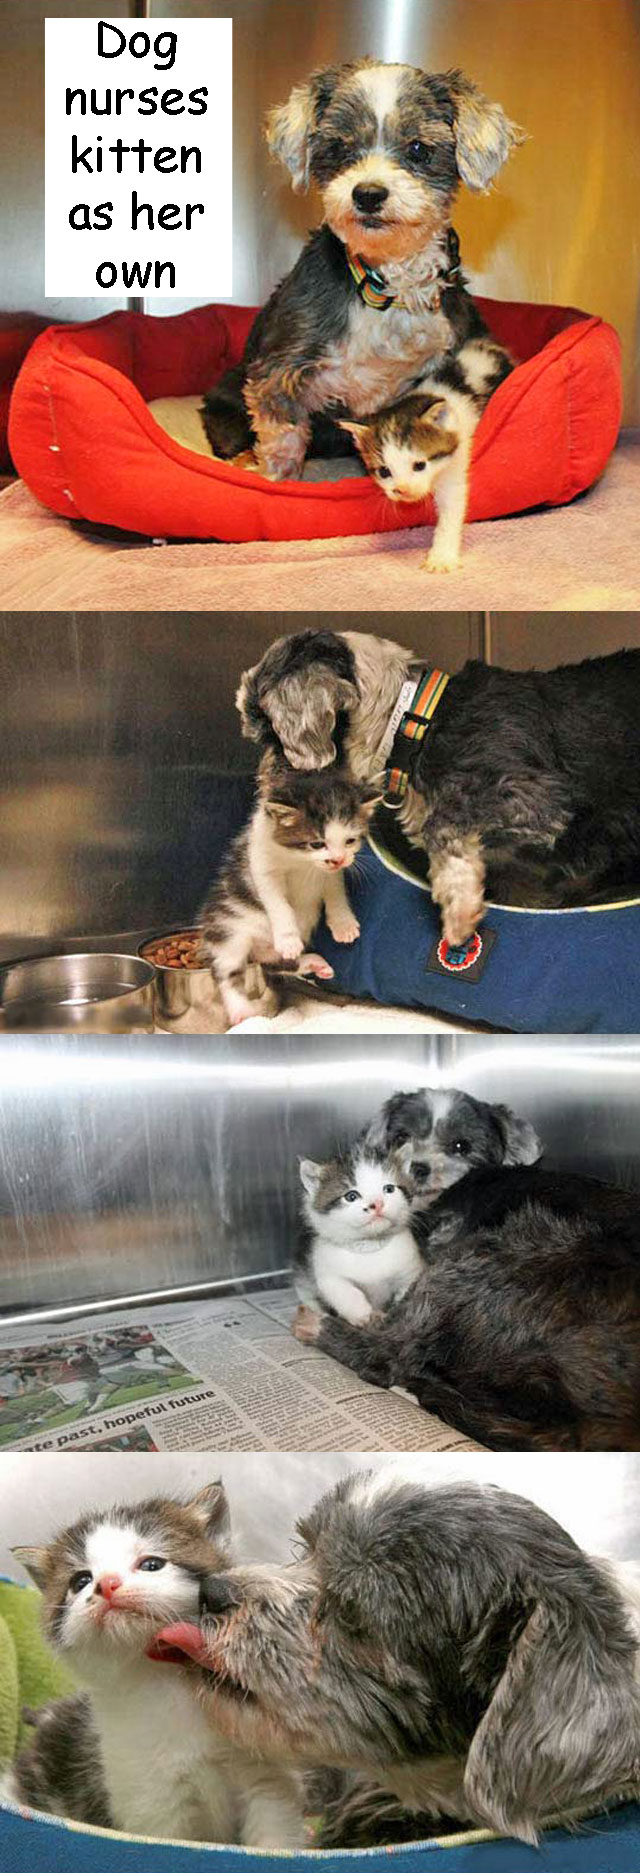 Rescued dog nursing kitten as her own